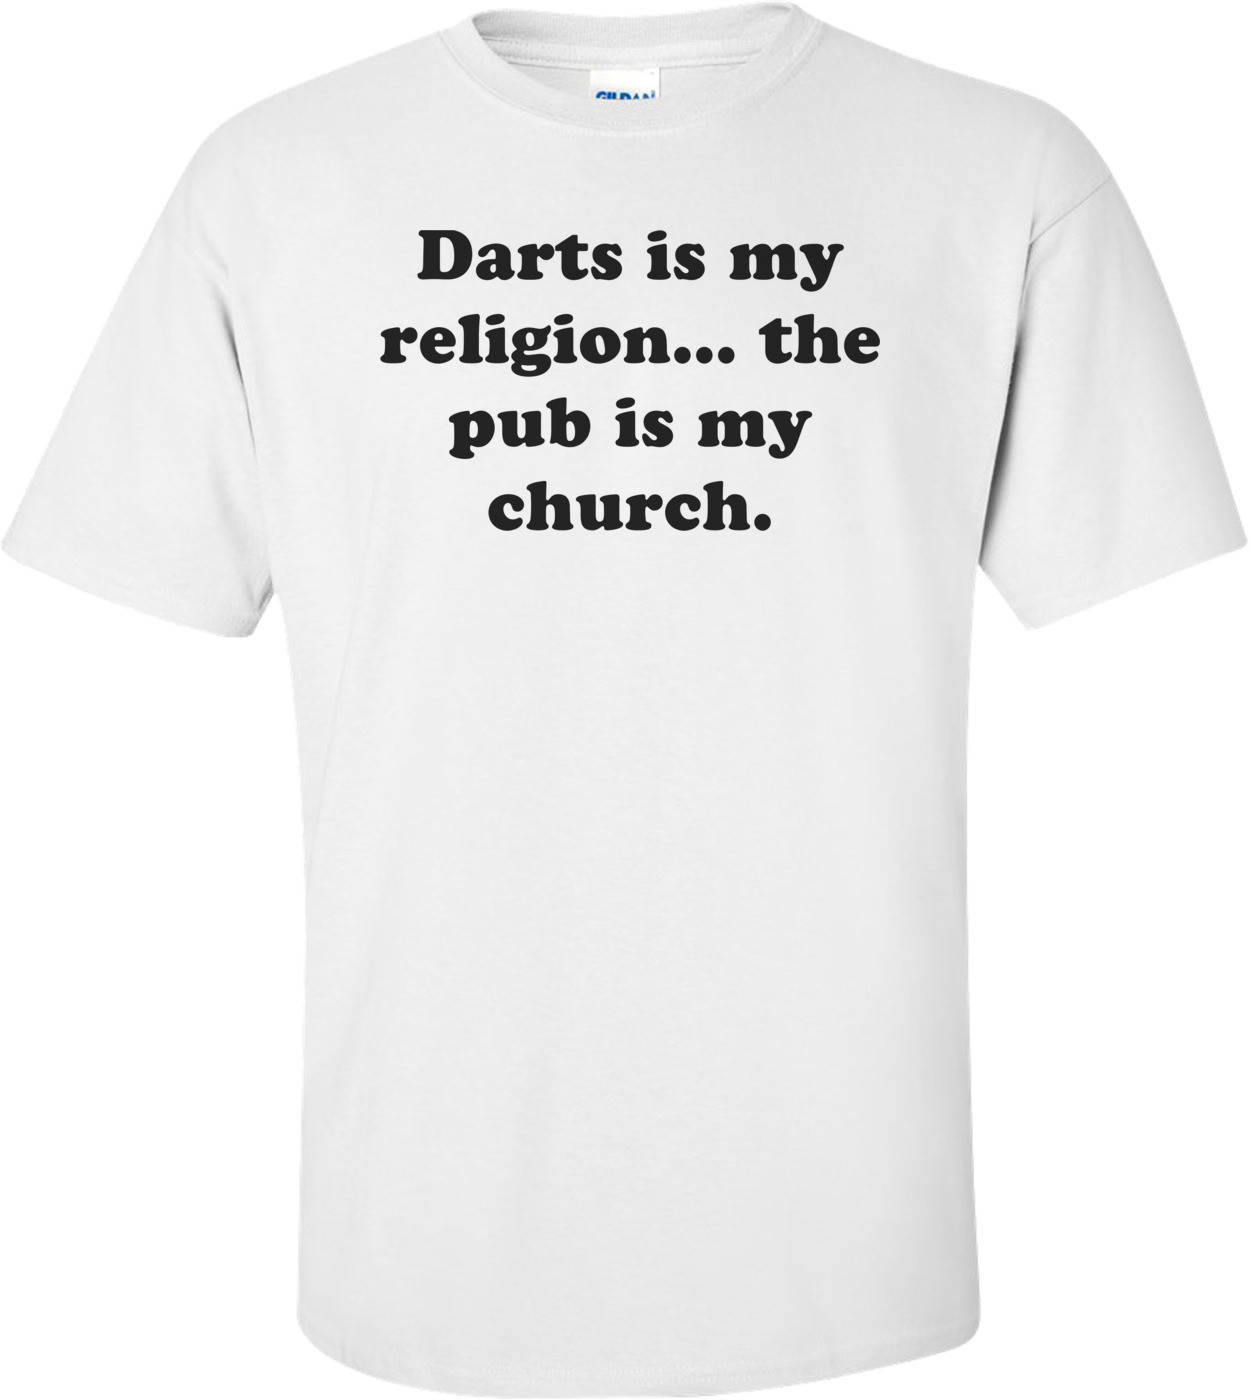 Darts is my religion... the pub is my church. Shirt